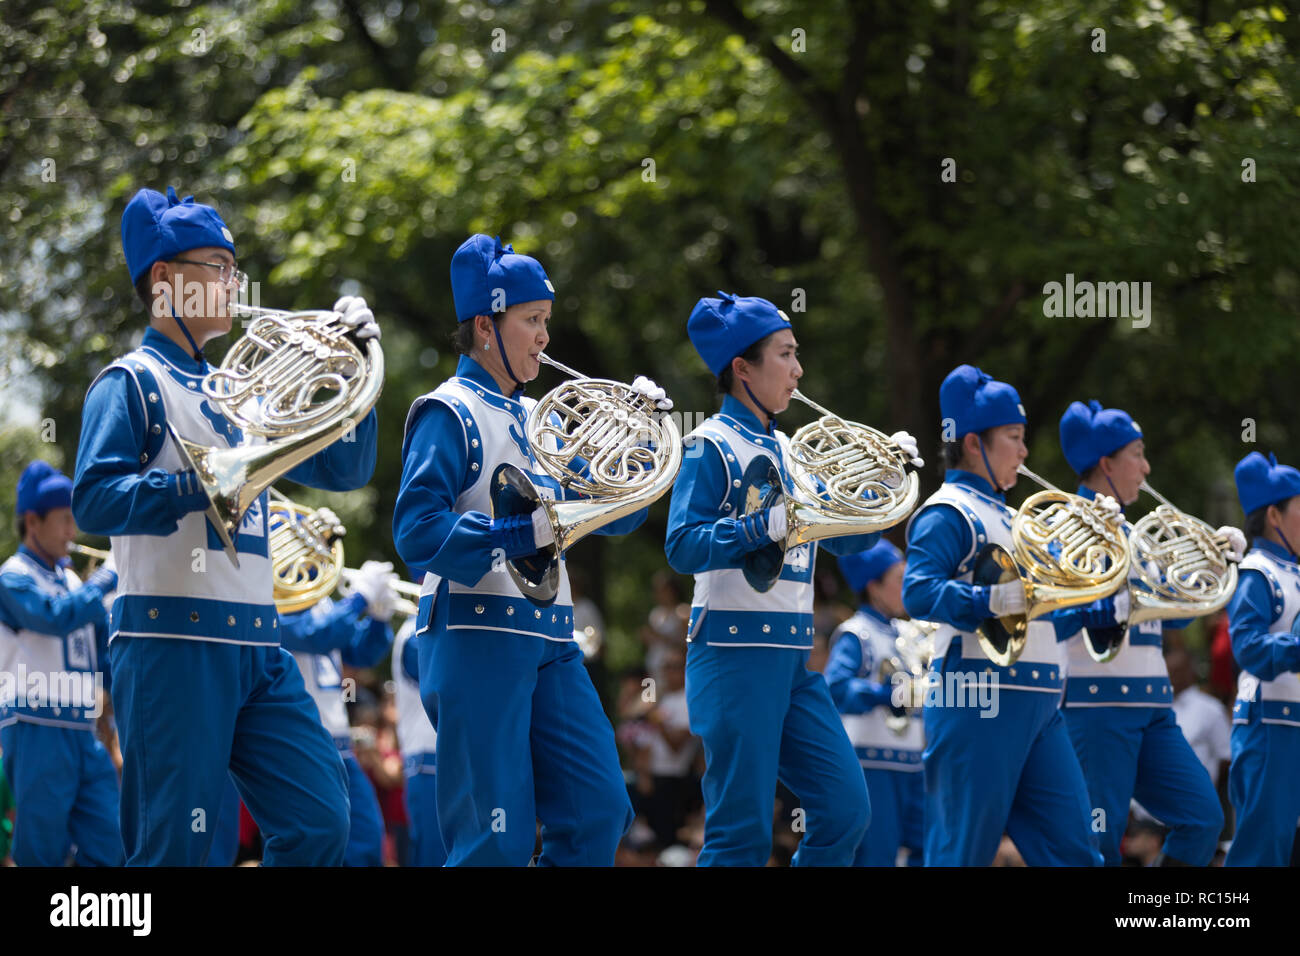 Washington, D.C., USA - July 4, 2018, The National Independence Day Parade, Falun Dafa chinese marching band, wearing traditional clothing, marching d Stock Photo